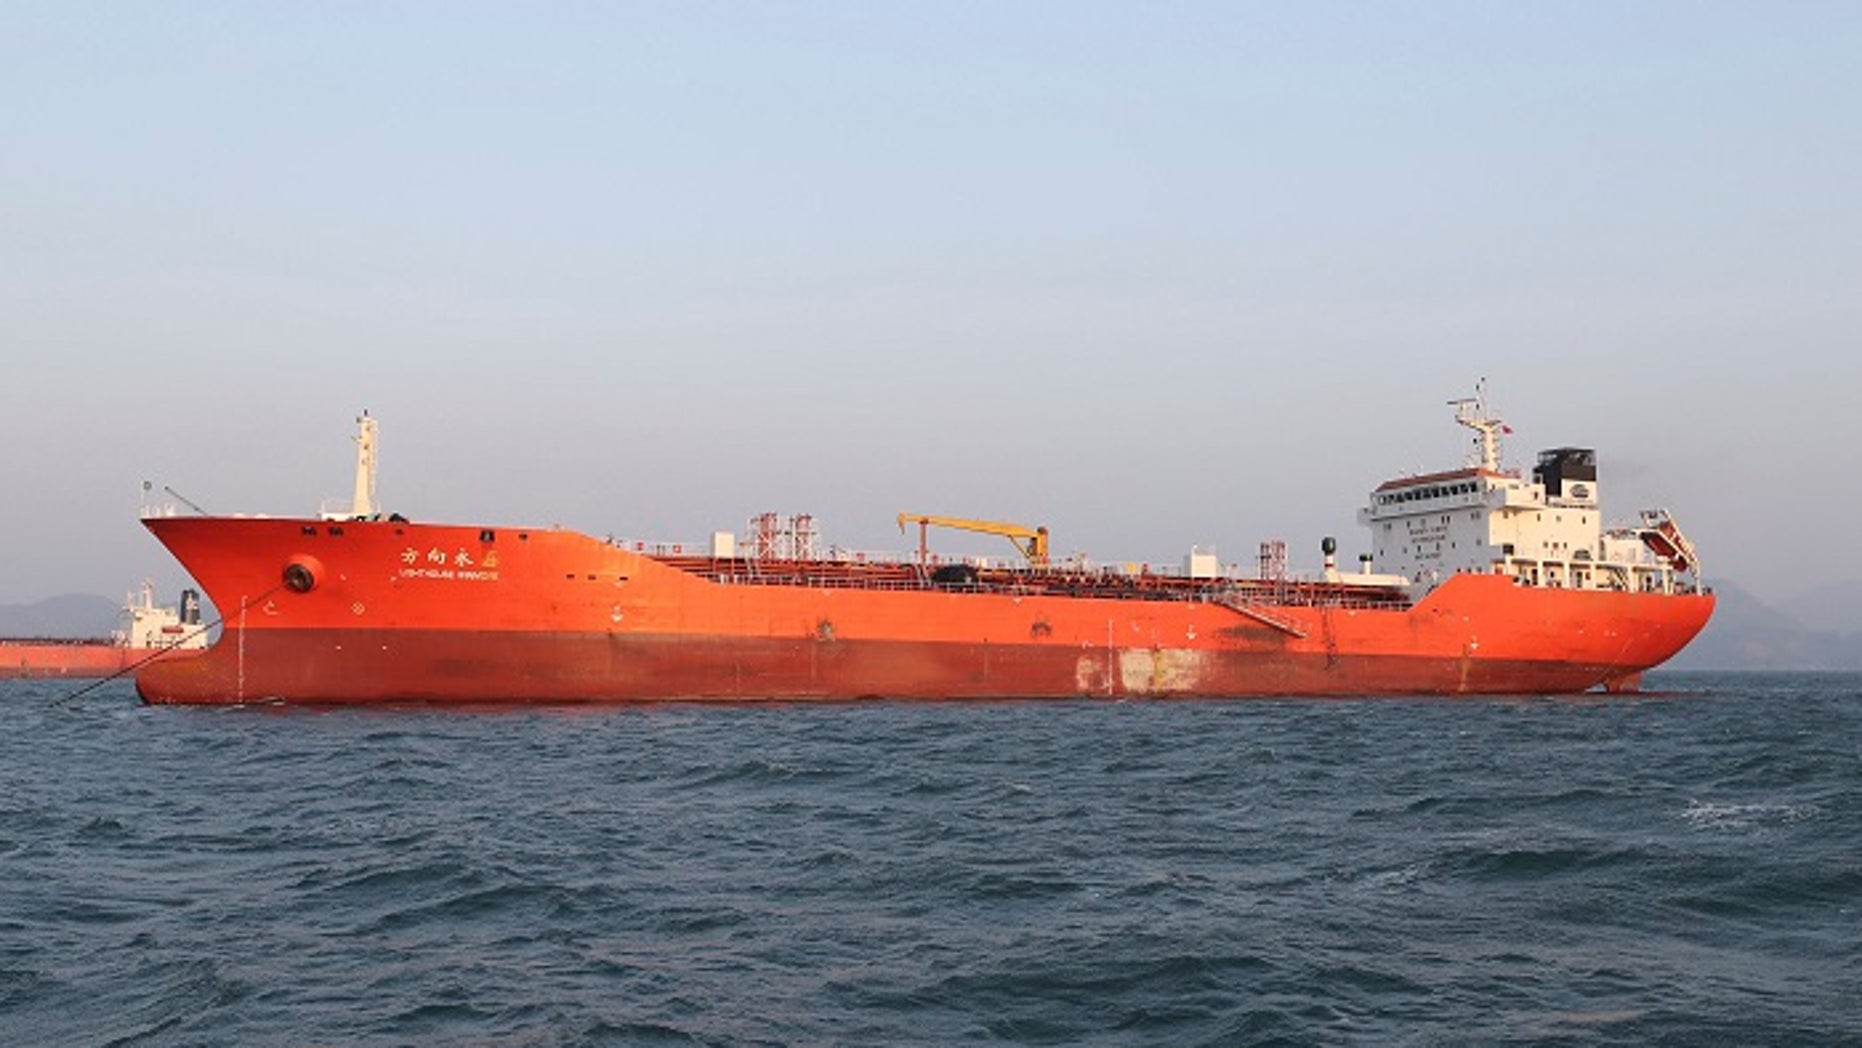 The Lighthouse Winmore, a Hong Kong-flagged ship, was seen in the waters off Yeosu, South Korea. South Korean authorities boarded the ship and interviewed its crew members for allegedly violating U.N. sanctions by transferring oil to a North Korean vessel in October.